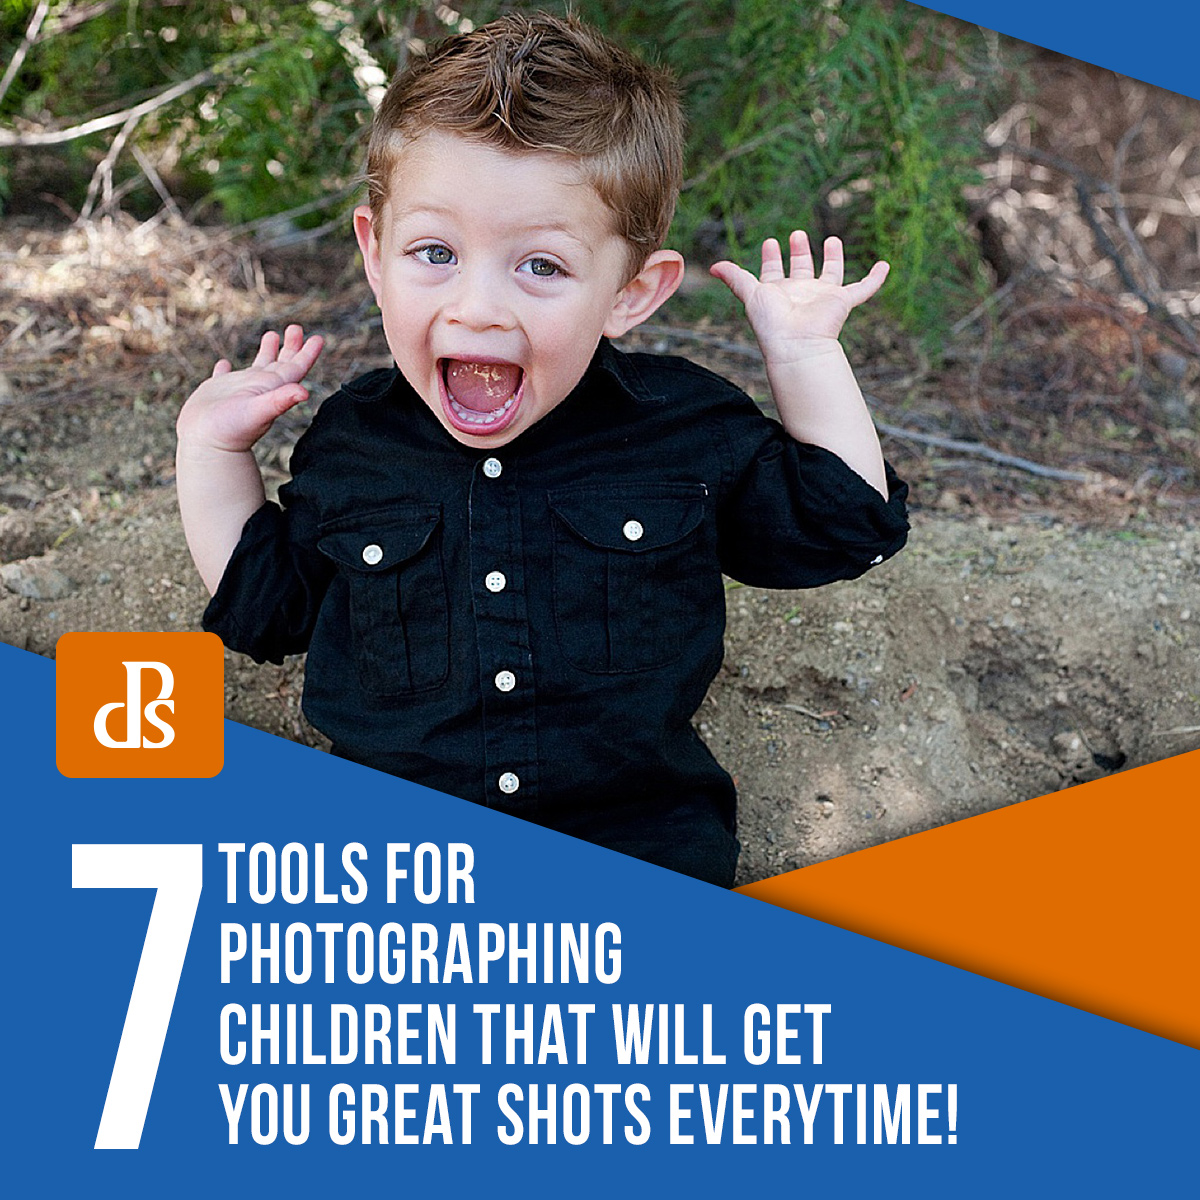 tools-for-photographing-children